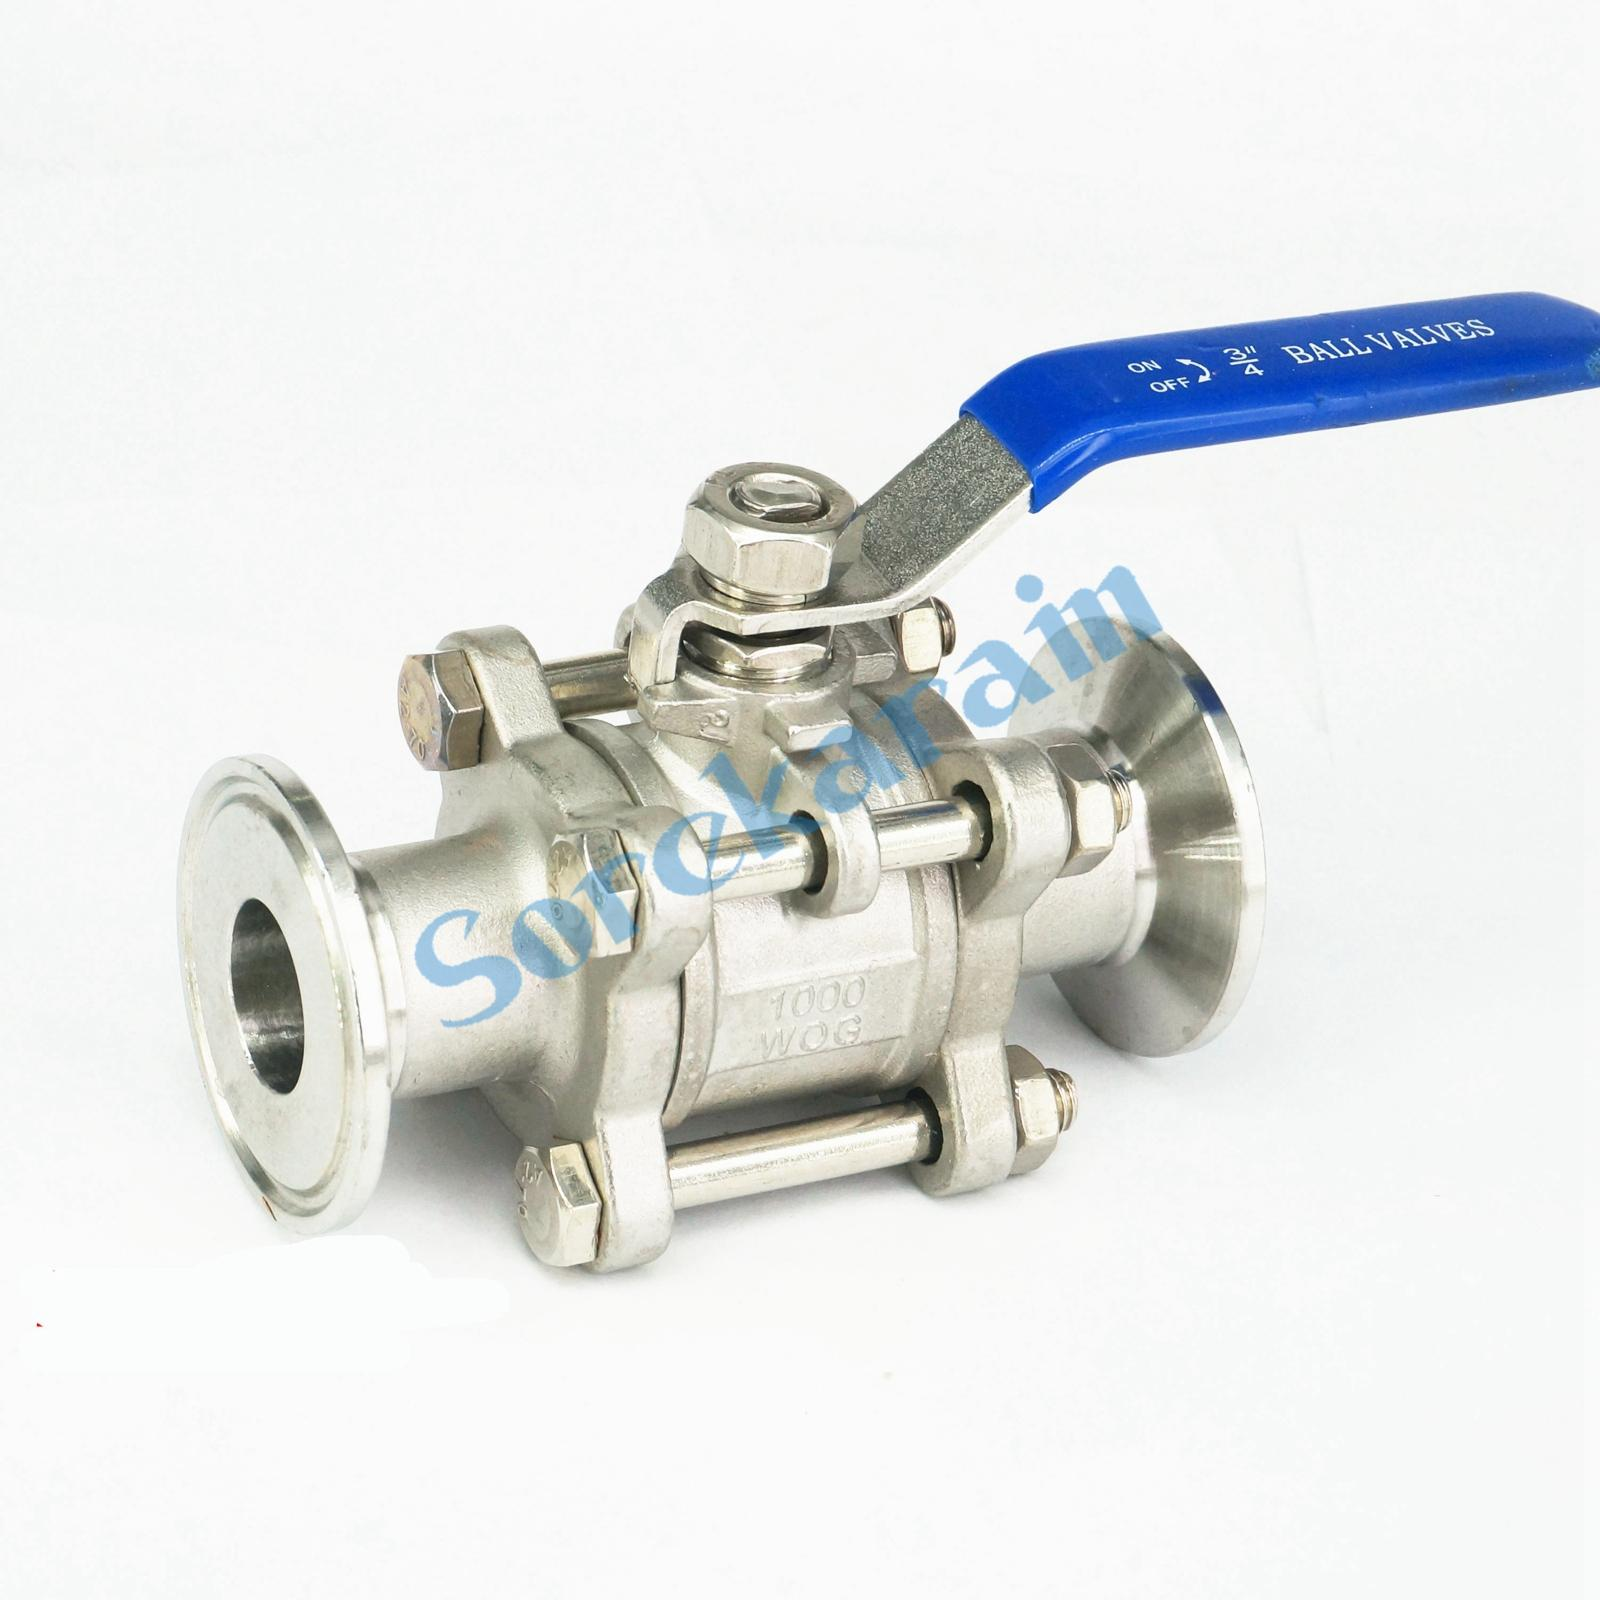 Fit 25mm 1 Pipe OD 1.5 Tri Clamp SS304 Stainless Steel 3-Piece Ball Valve tri clamp stainless steel 304 flexible hose length 1000mm diameter 1 25mm od 50 5